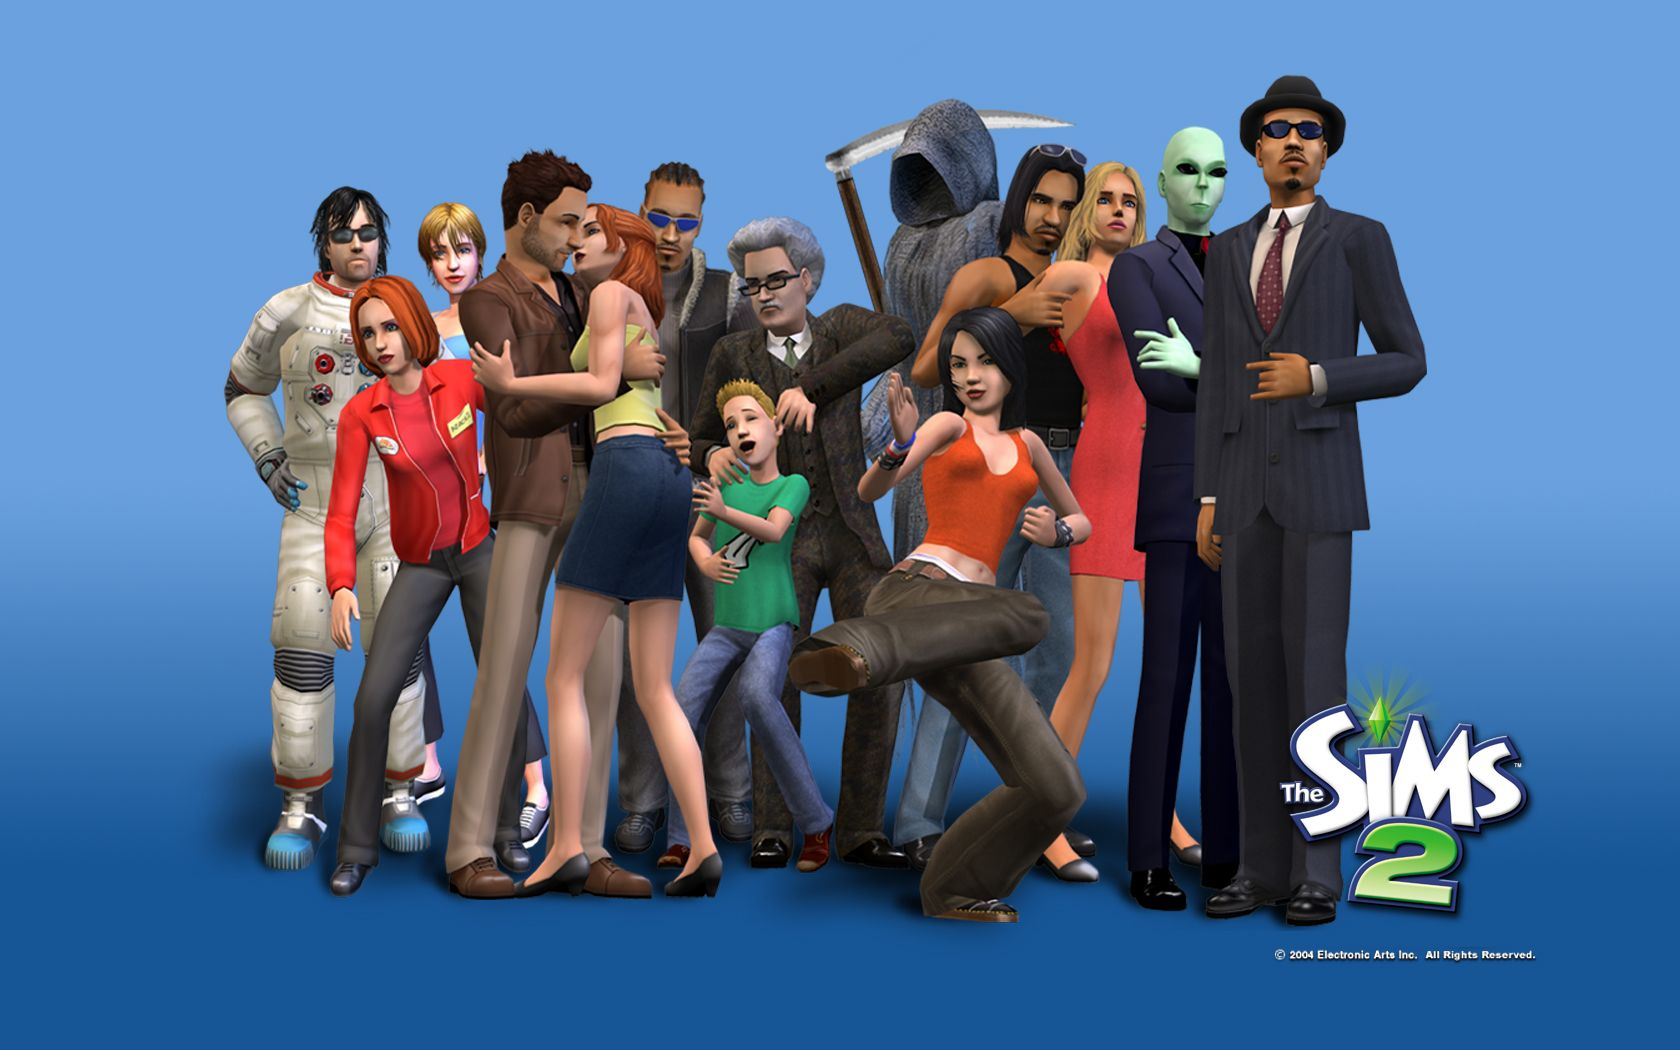 the sims 2 ultimate collection' is currently free to download on, Badezimmer ideen